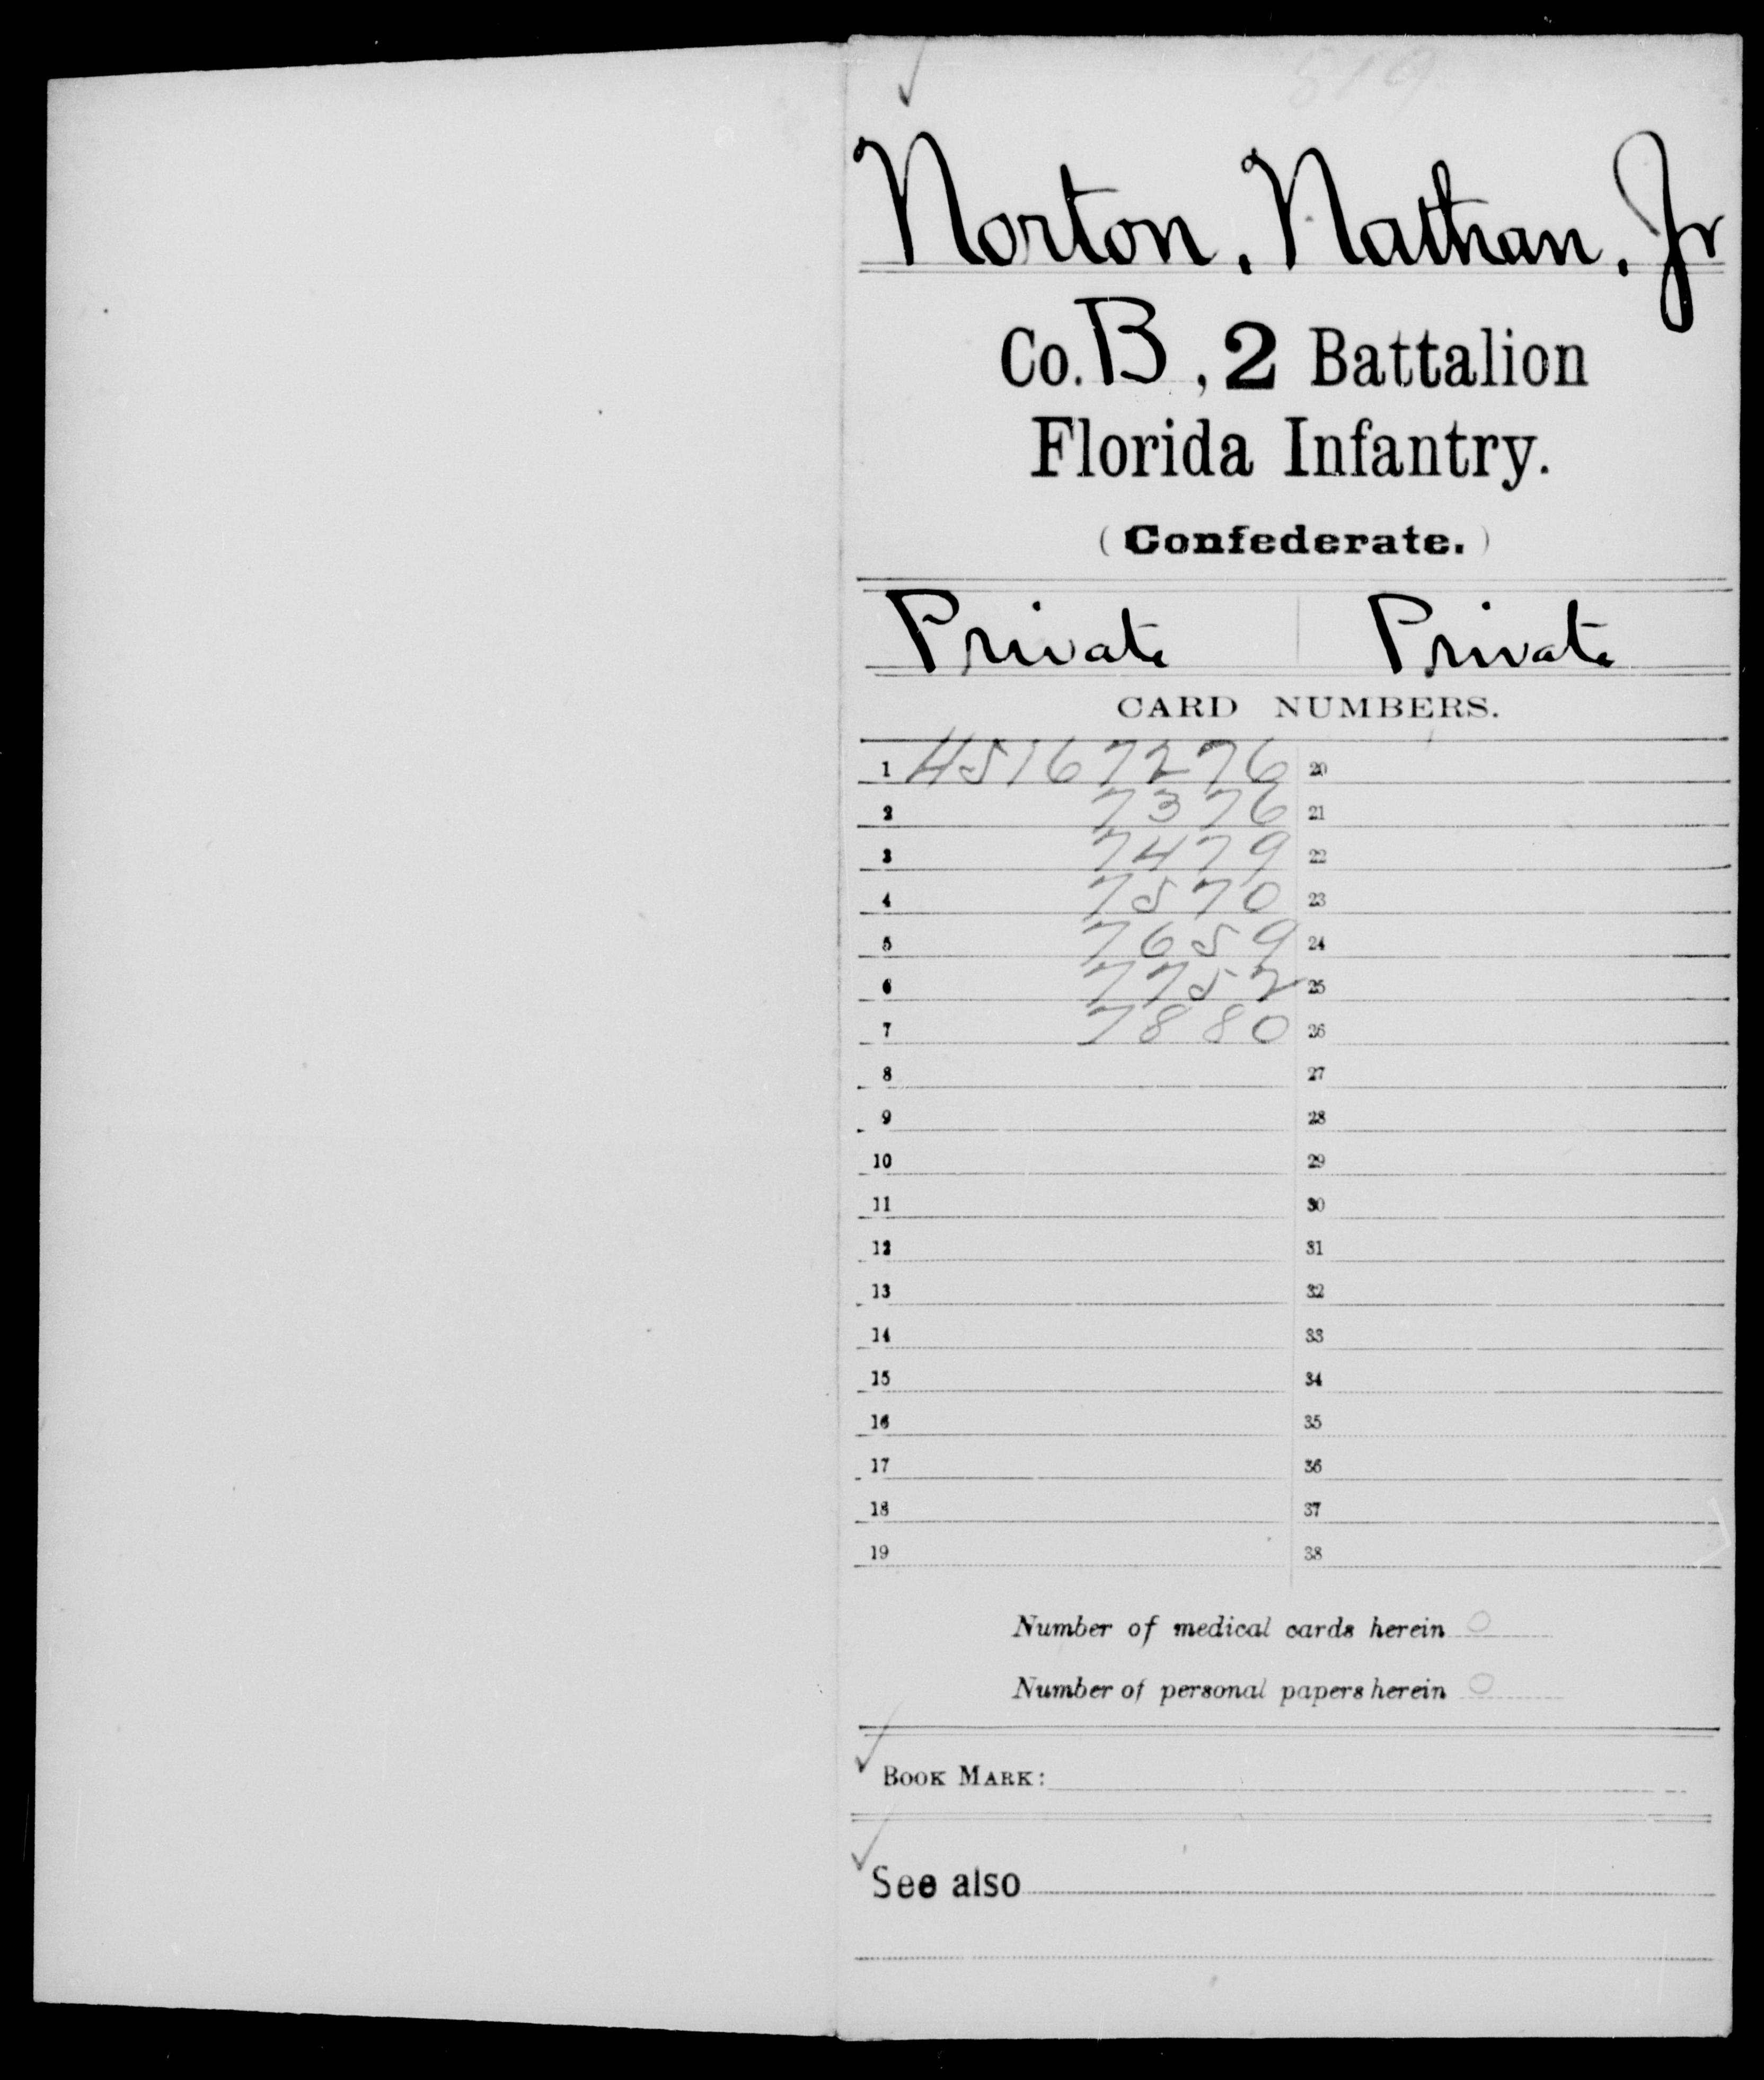 [Florida] Norton, Nathan - Age 23, Year: 1862 - Second Battalion, Infantry (G-N)